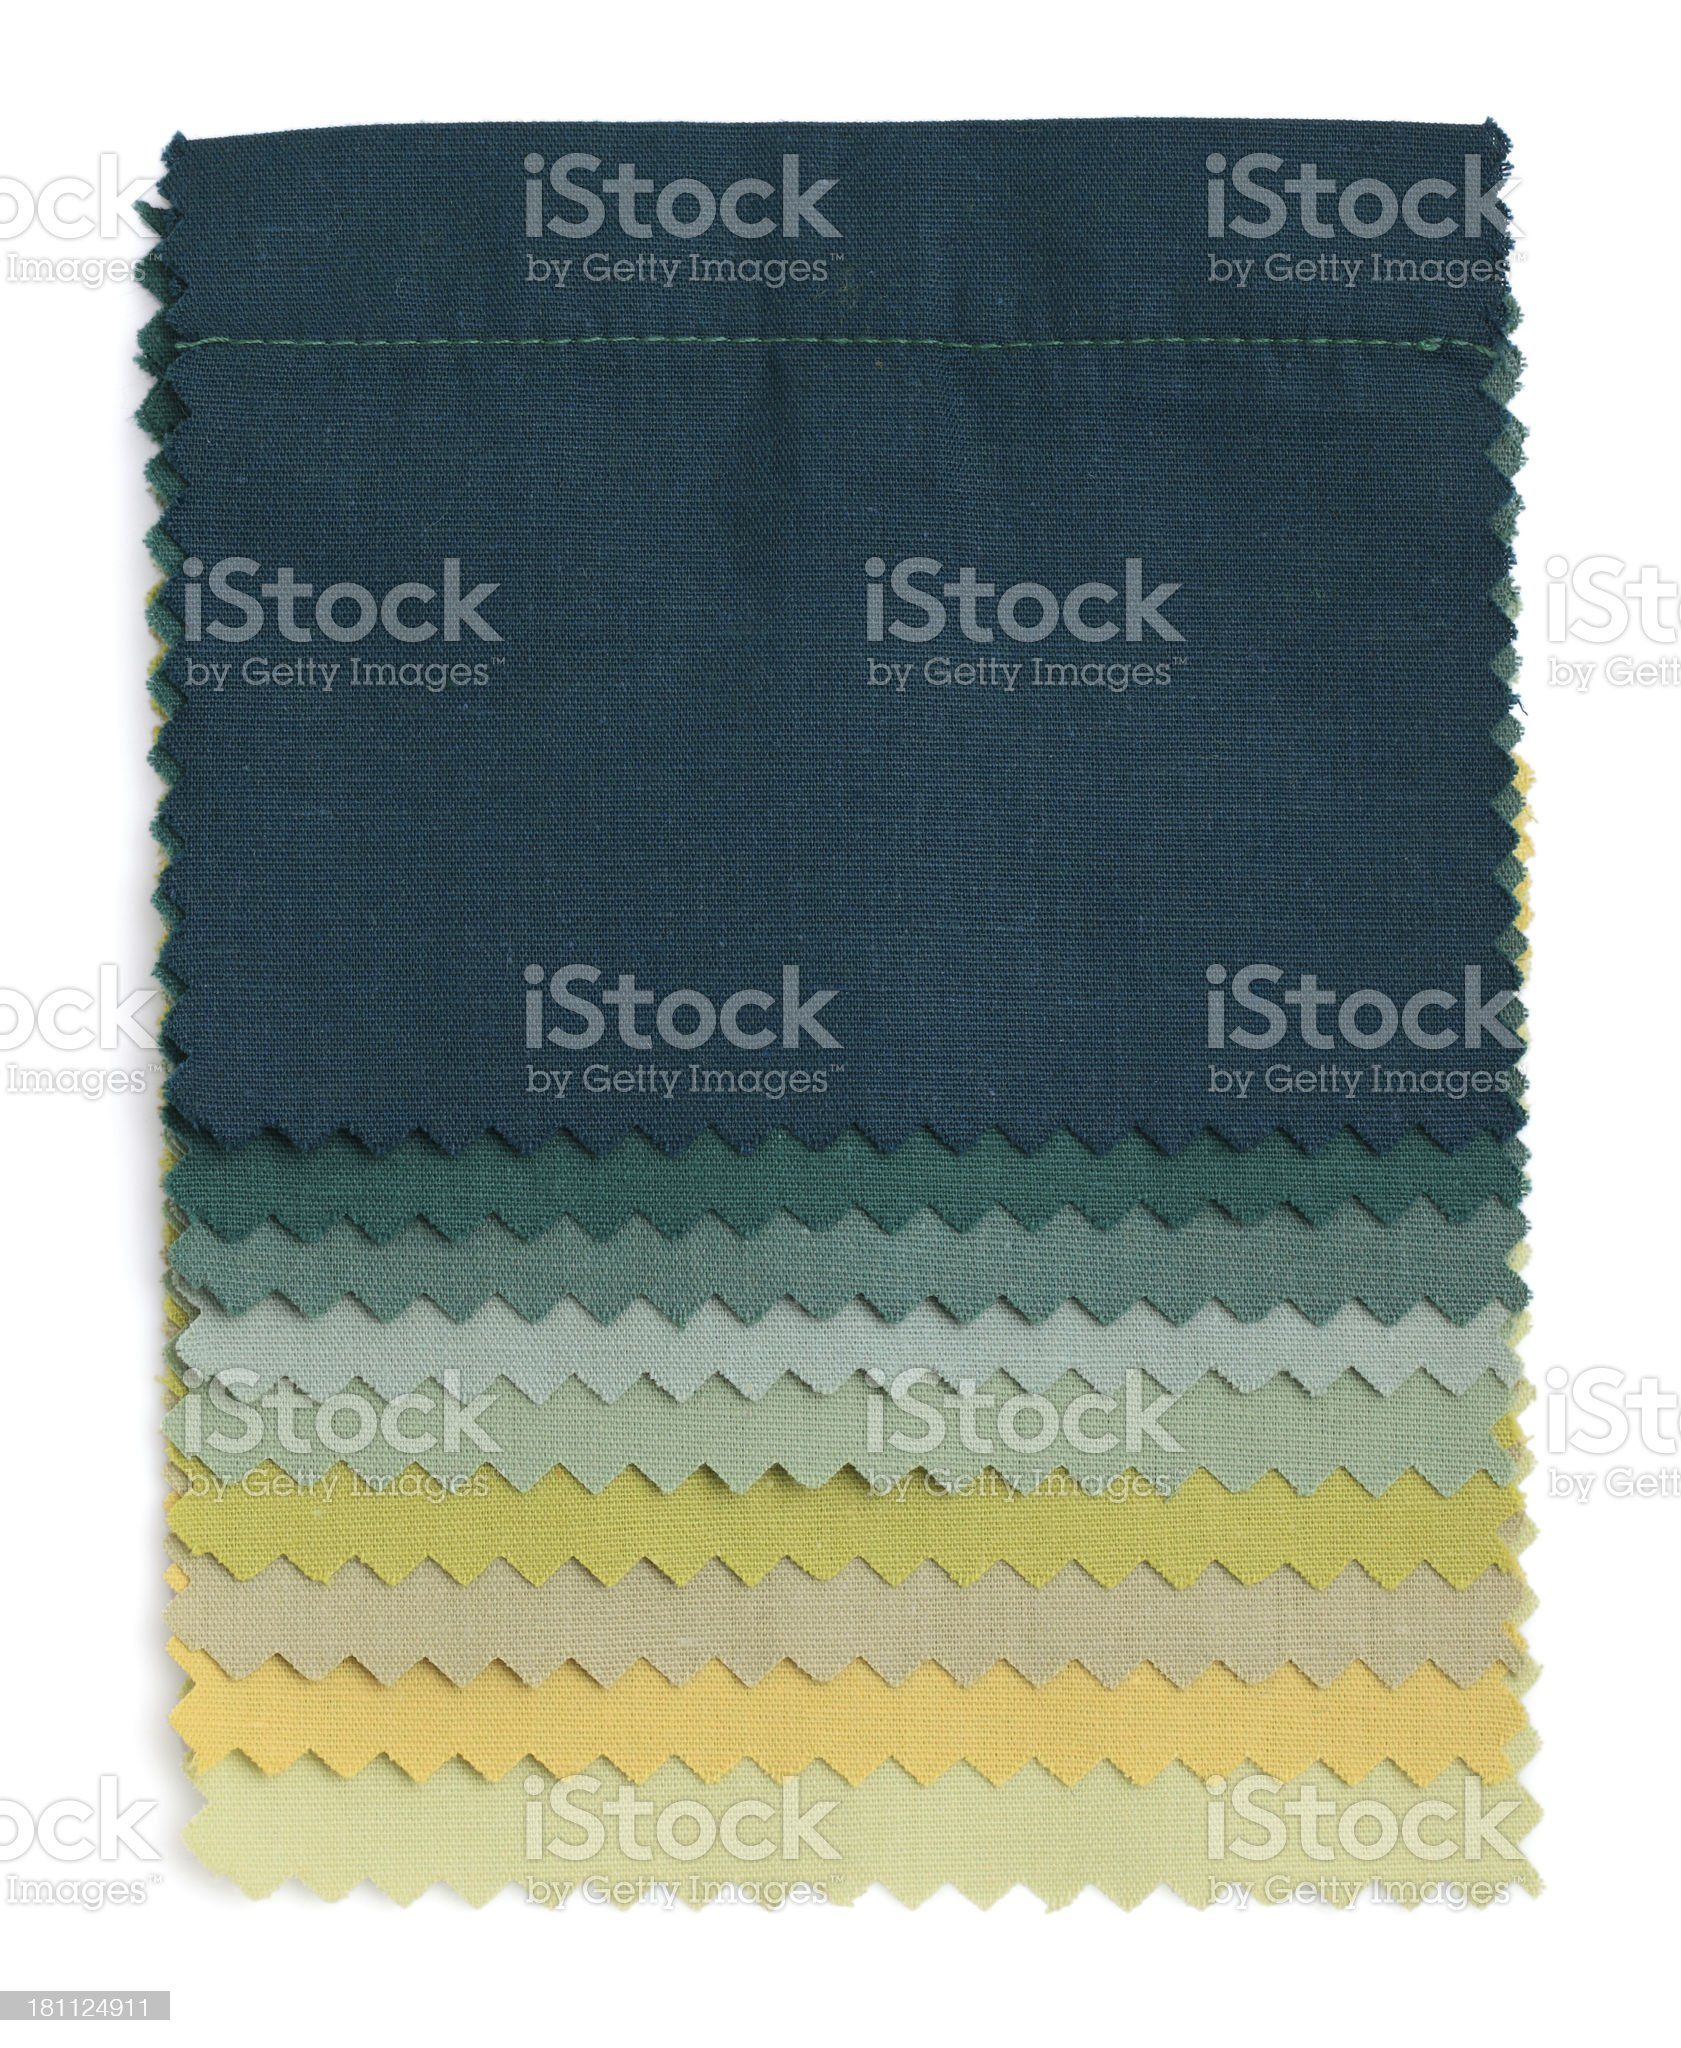 Green Stitched Fabric Swatches royalty-free stock photo